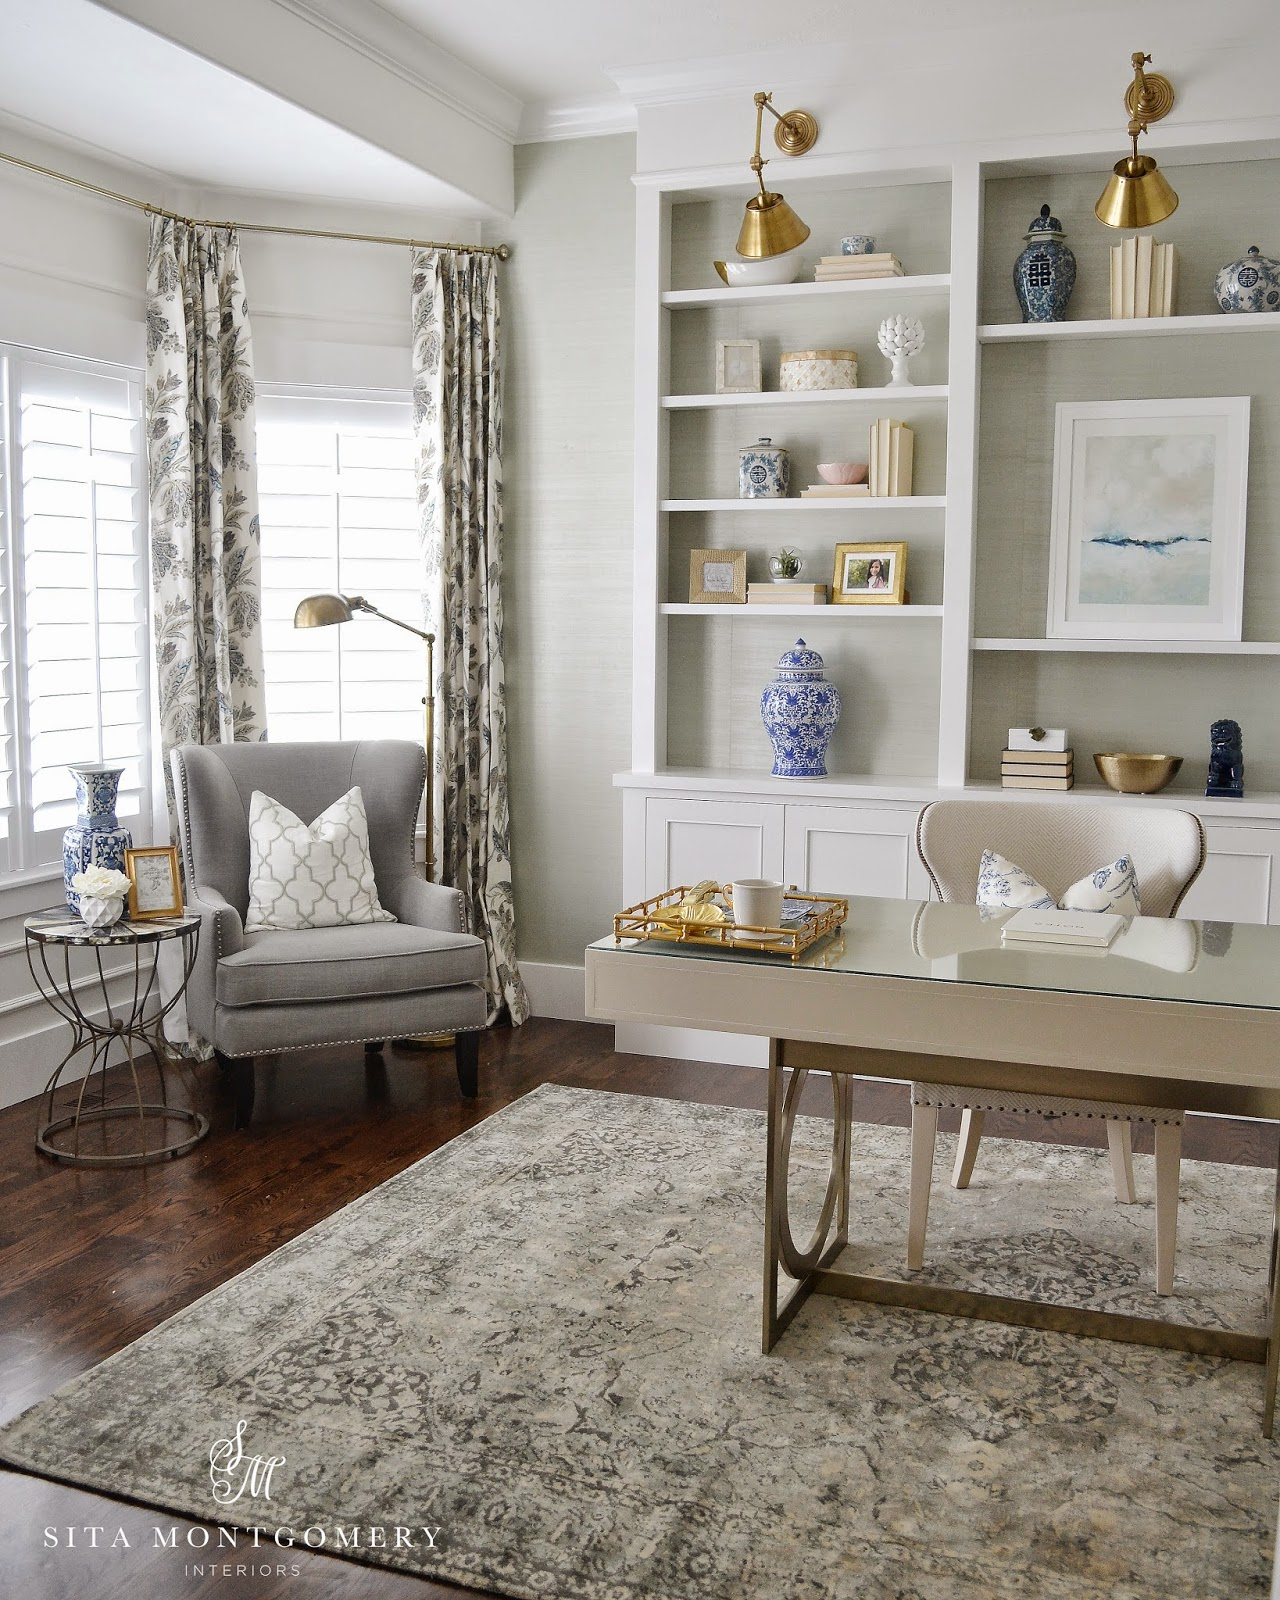 Home Office Room Design: Sita Montgomery Interiors: My Home Office Makeover Reveal